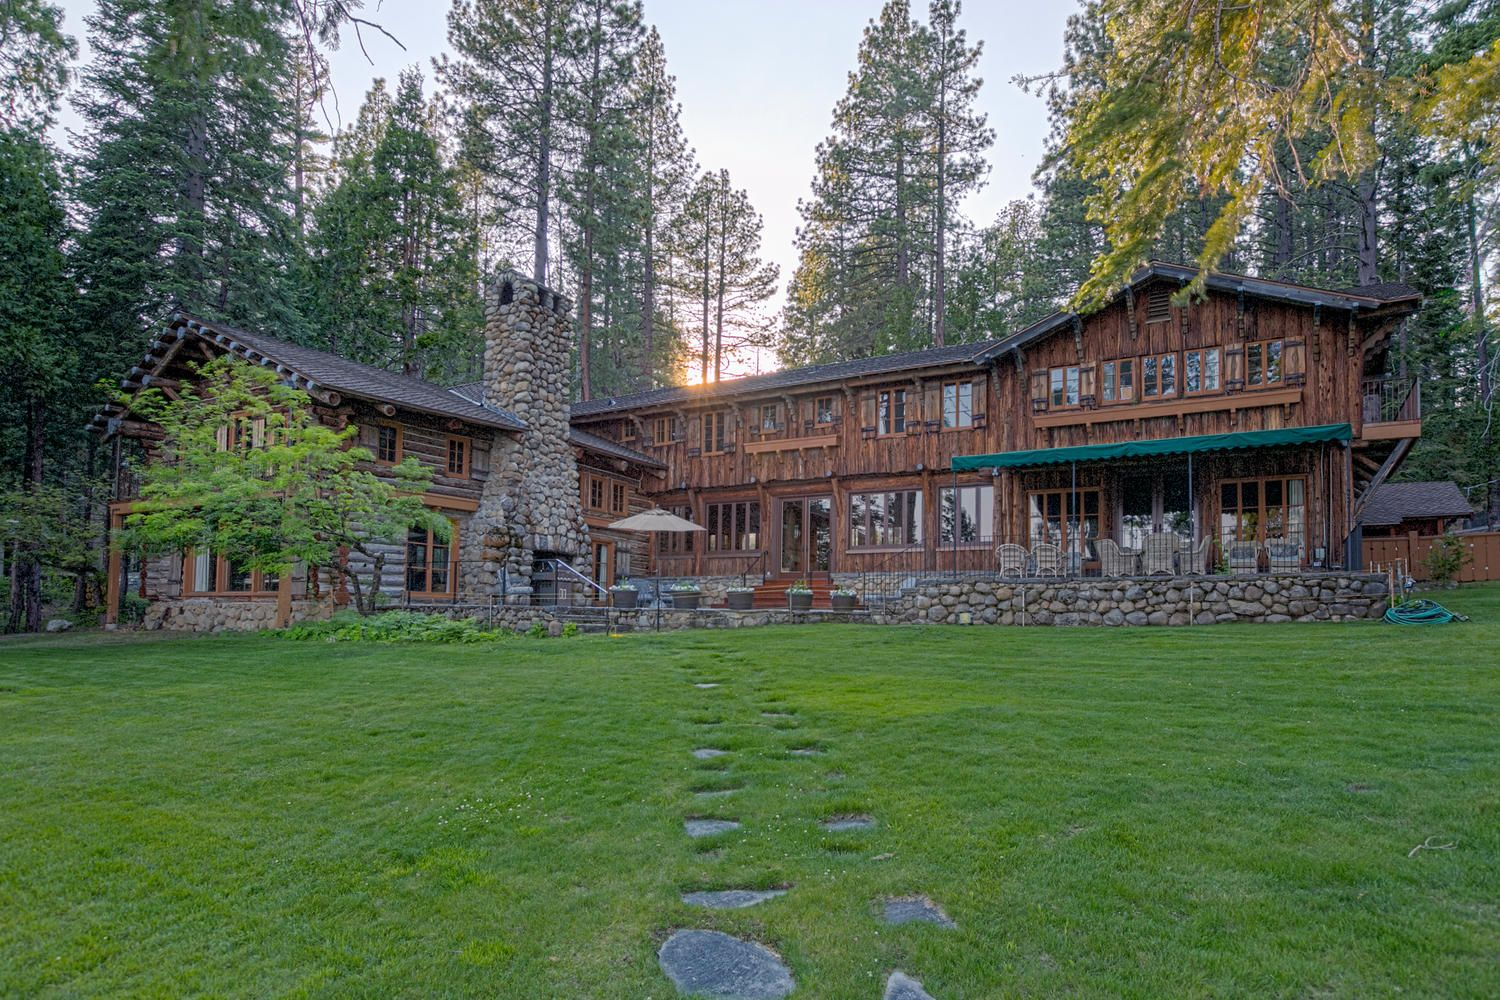 lake lightbox image beach haven home tahoe cabin lakefront cabins rental rentals vacation